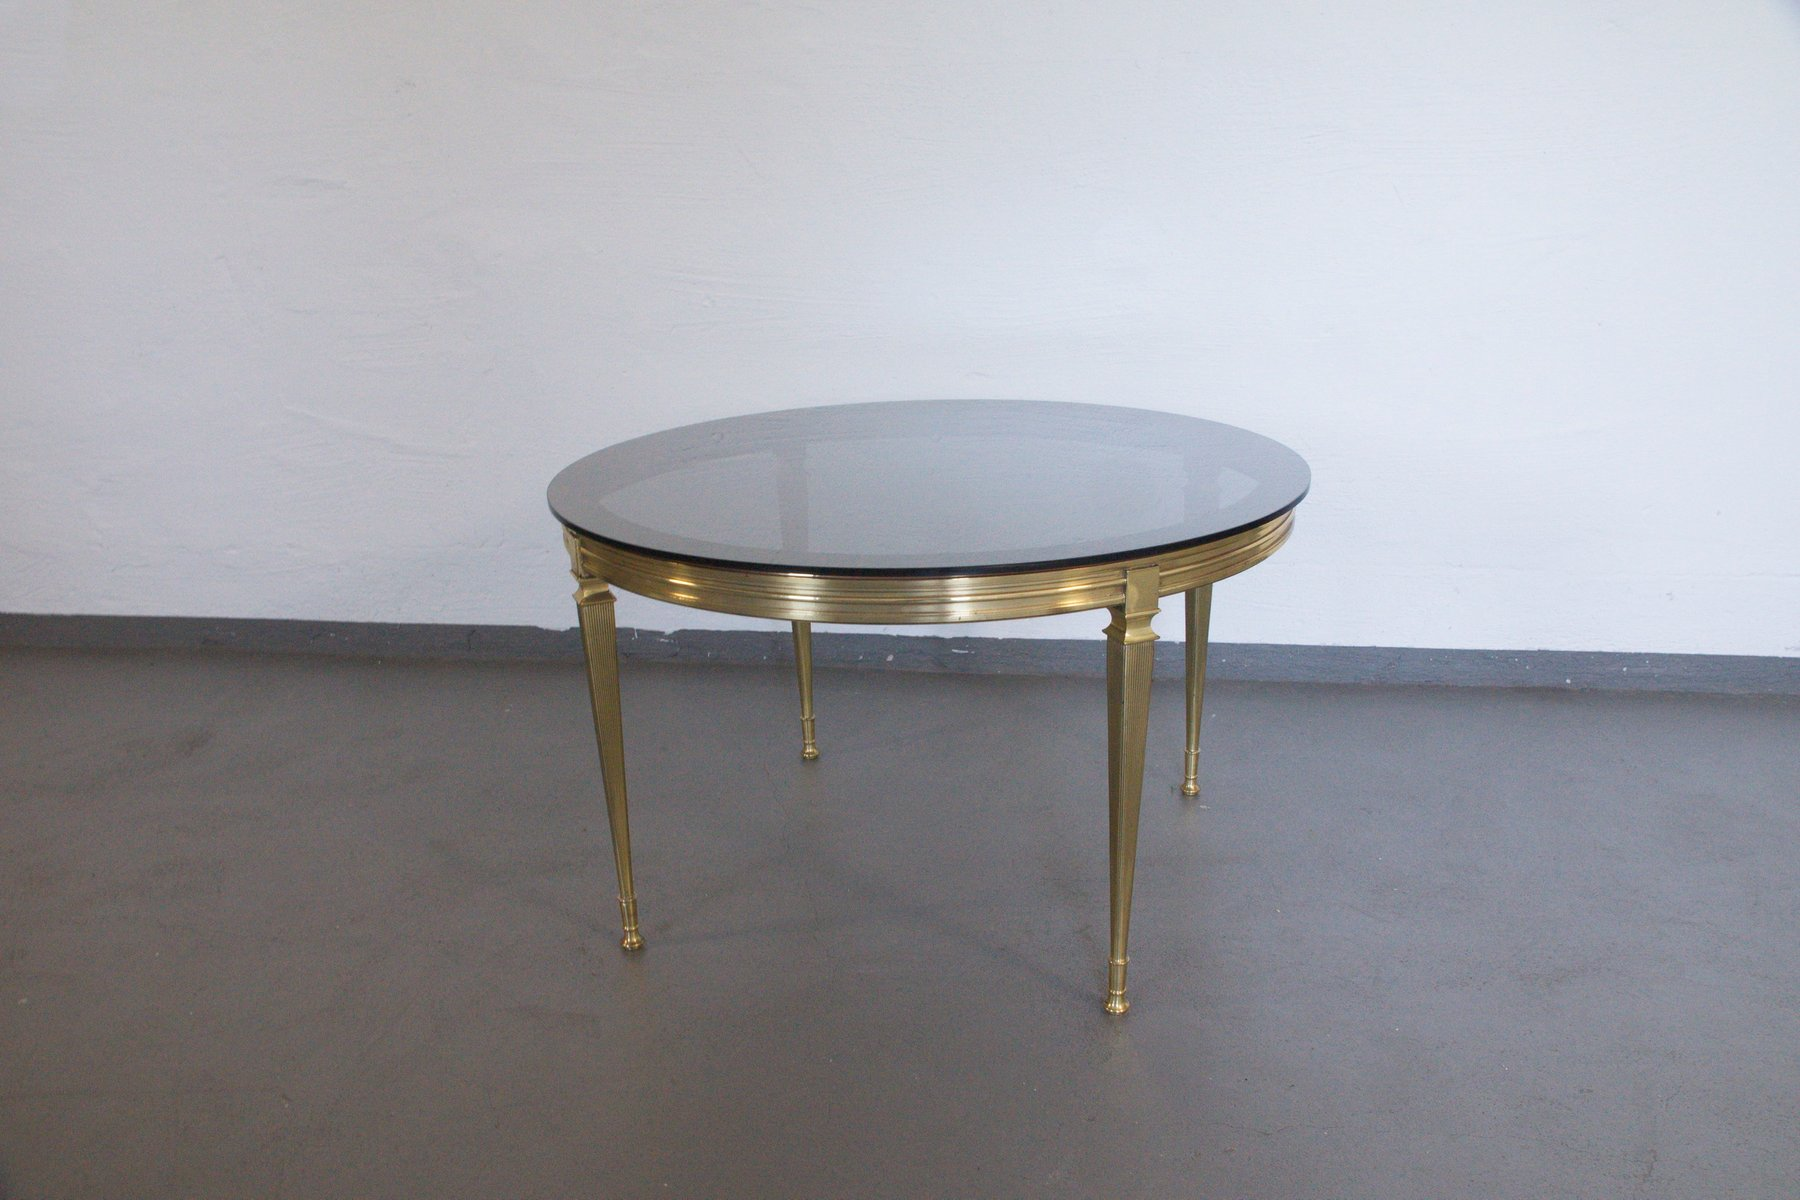 Vintage Italian Brass Glass Coffee Table 1960s For Sale At Pamono